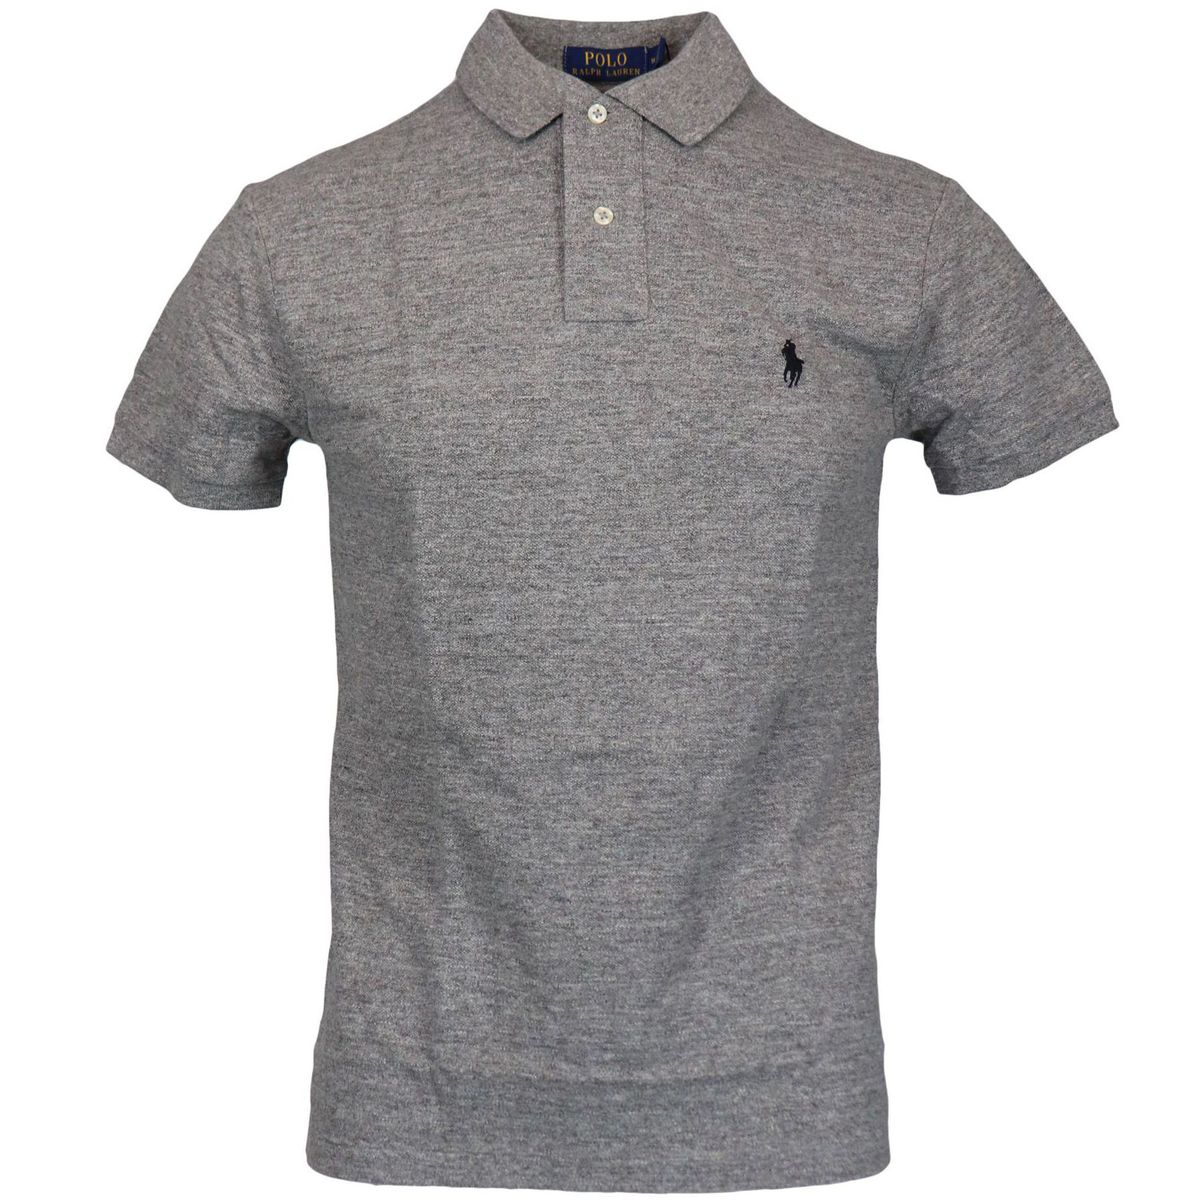 Two-button slim-fit cotton polo shirt with logo Grey Polo Ralph Lauren